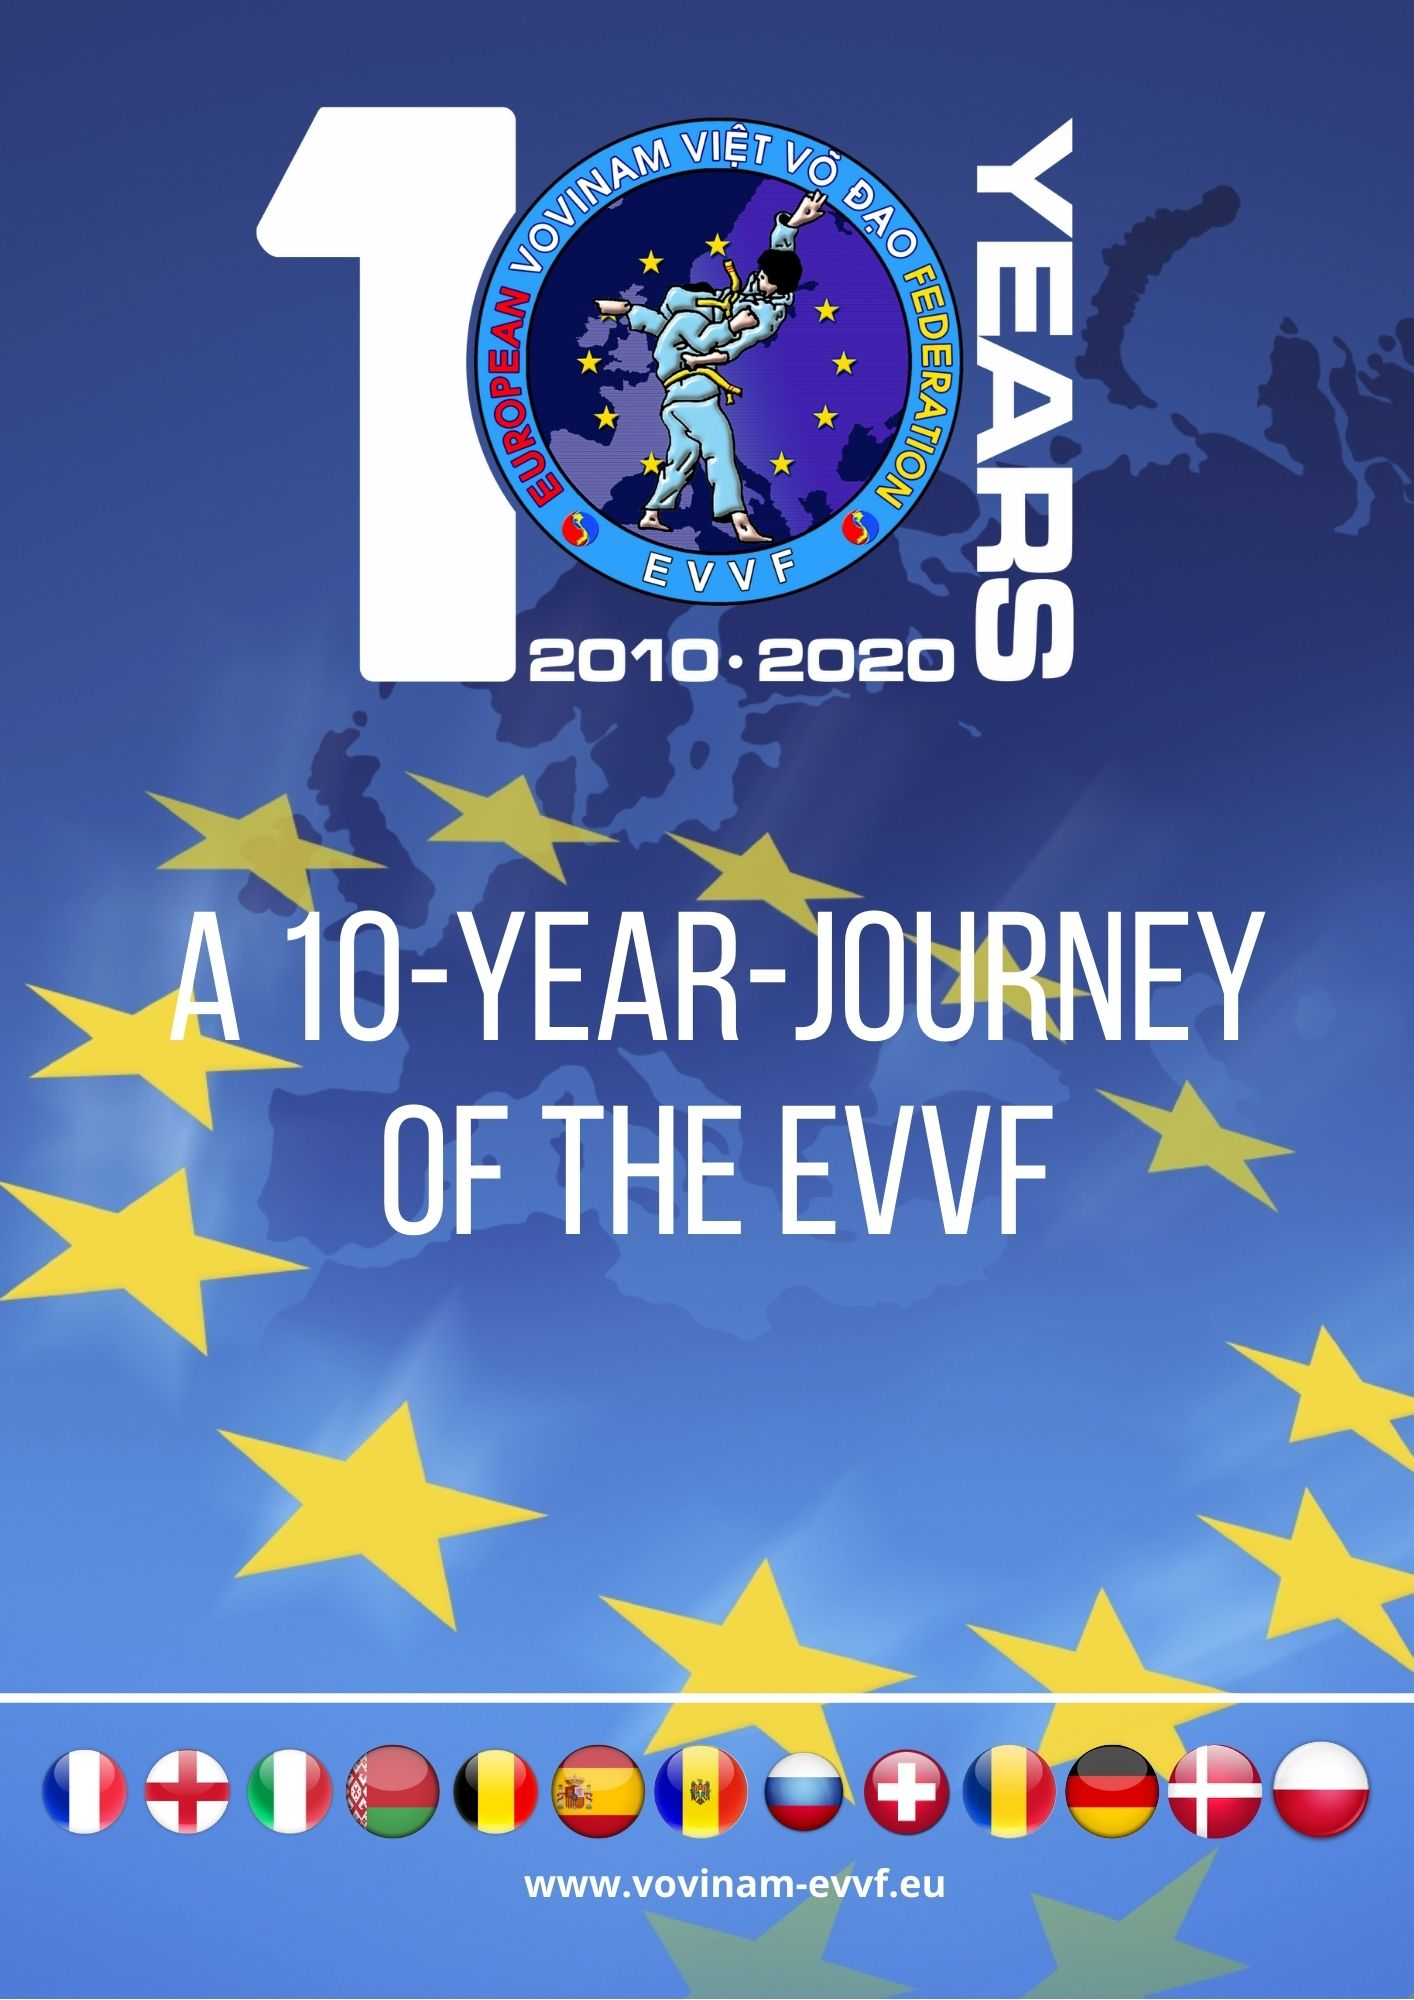 A 10-year-journey of the EVVF